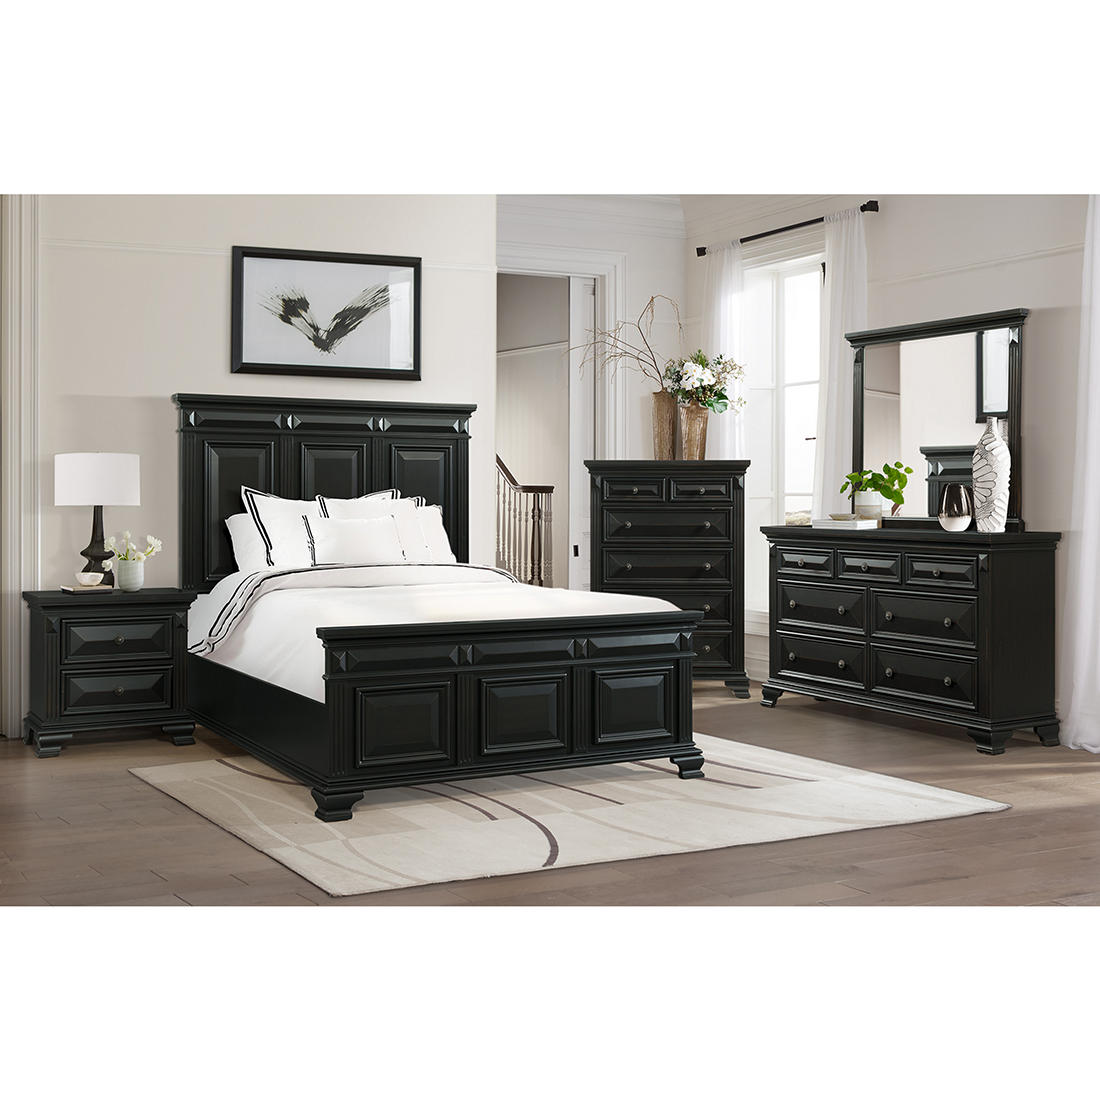 Windsor 5 Pc Queen Size Panel Bedroom Set Antique Black Bjs